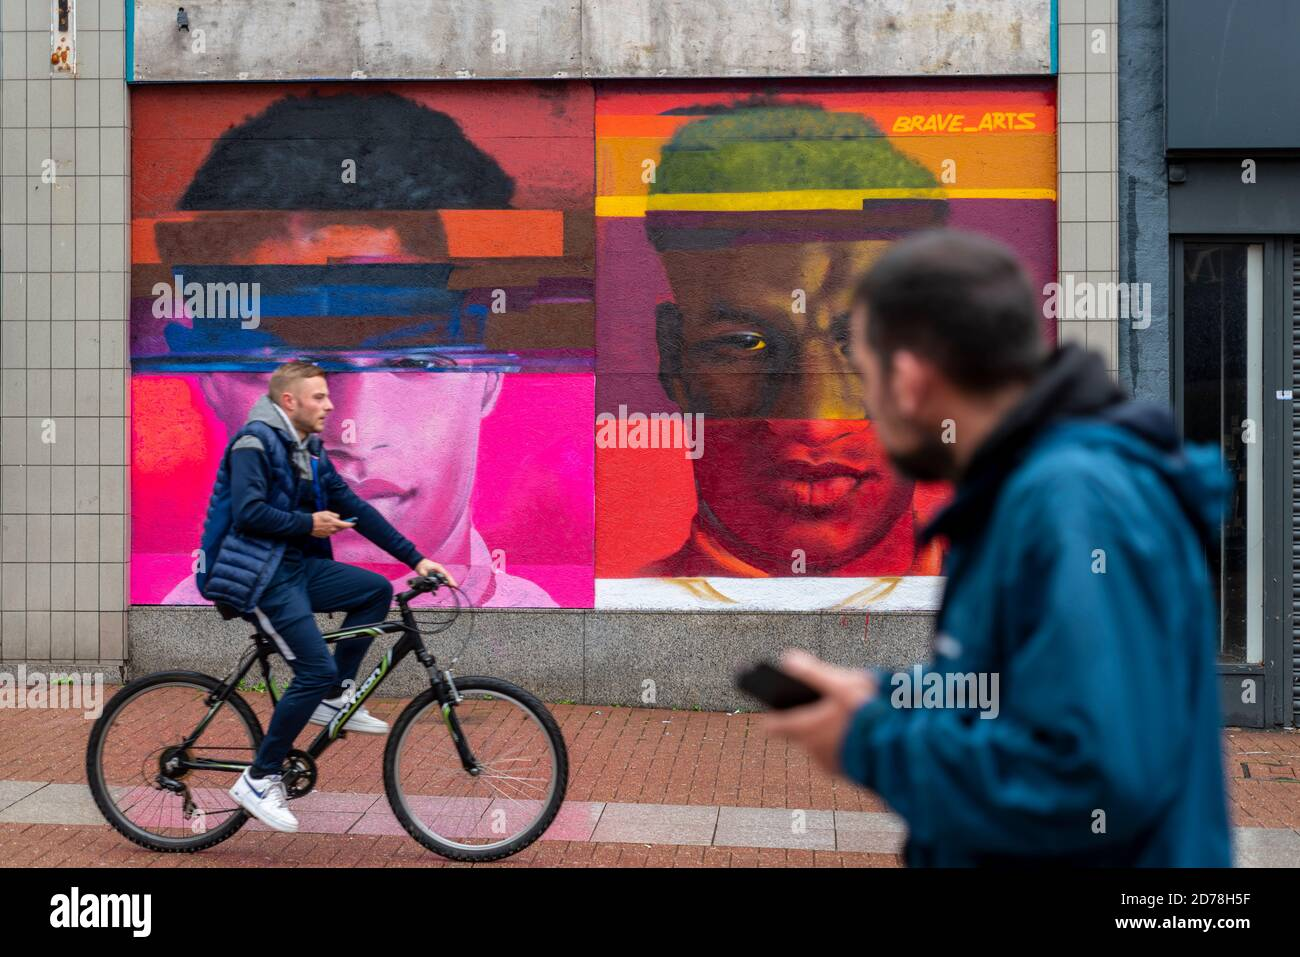 passers-by-passing-a-street-art-image-of-marcus-rashford-mbe-manchester-utd-and-england-footballer-and-campaigner-for-free-school-meals-for-poverty-2D78H5F.jpg